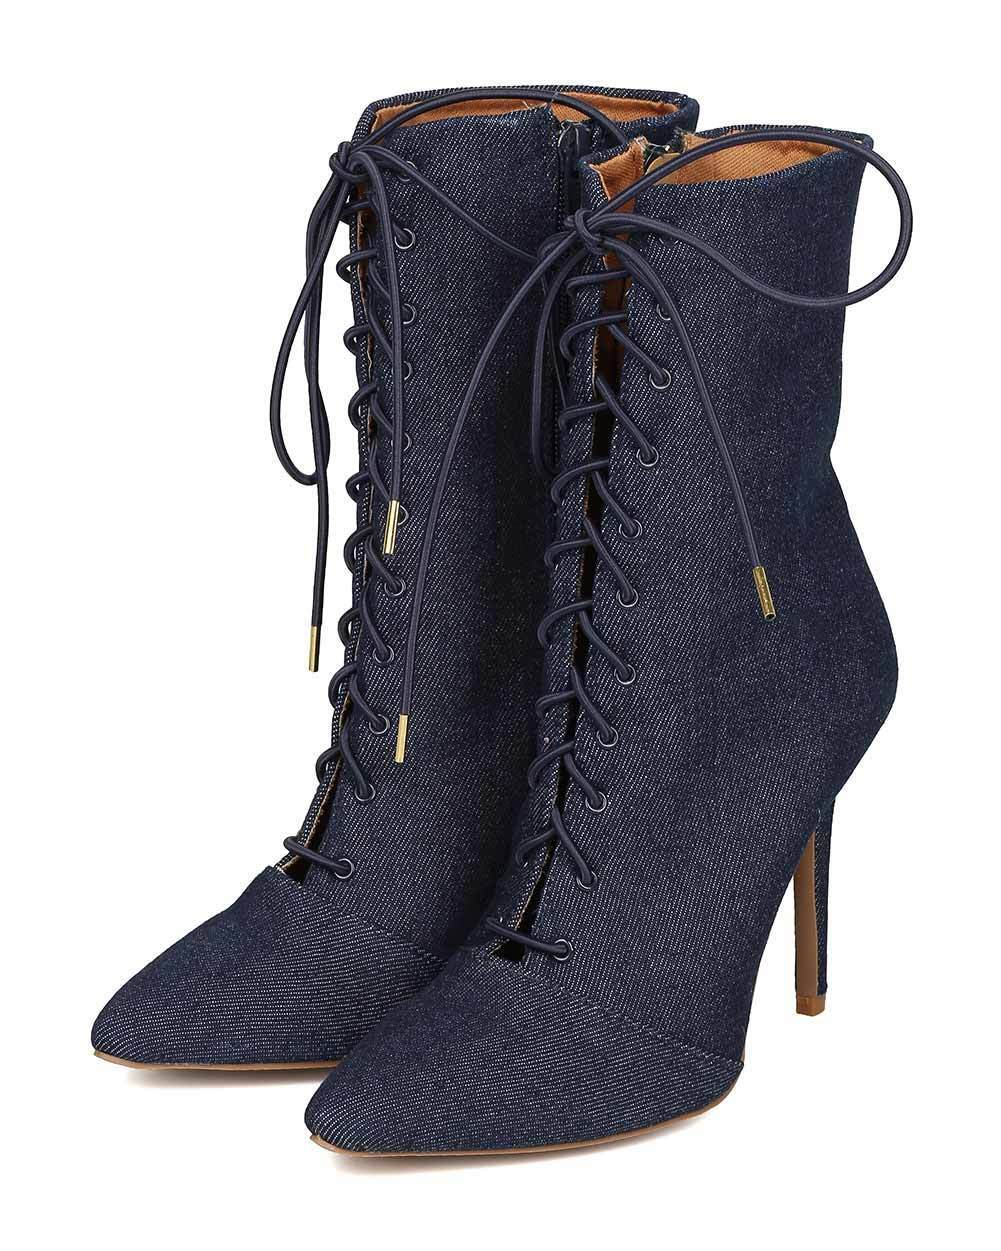 New Women Qupid Milia-63 Denim Pointy Toe Lace Up Stiletto Ankle Boot